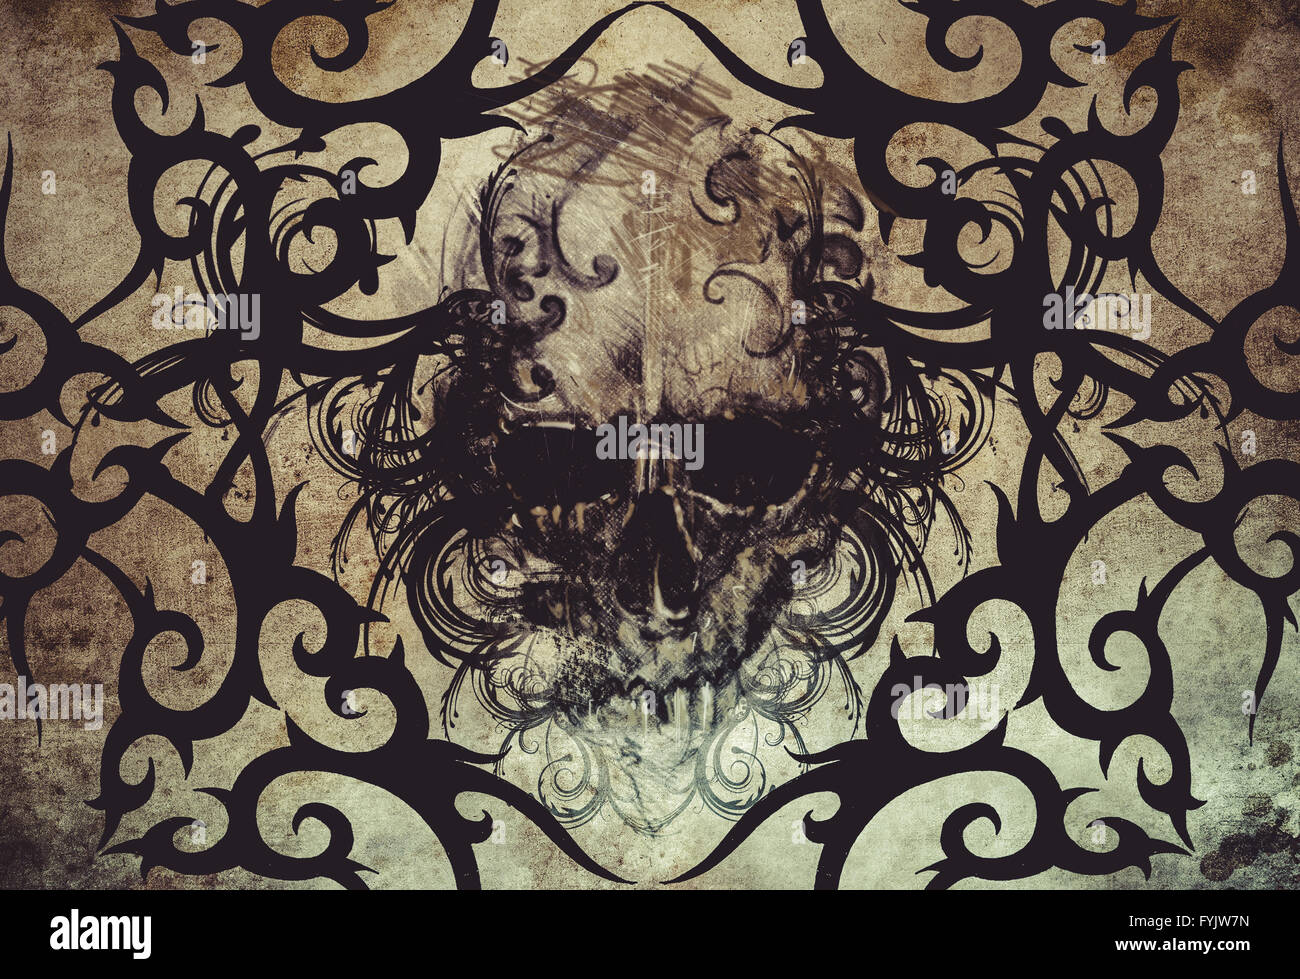 Skull. Tattoo design over grey background. textured backdrop. Artistic image - Stock Image